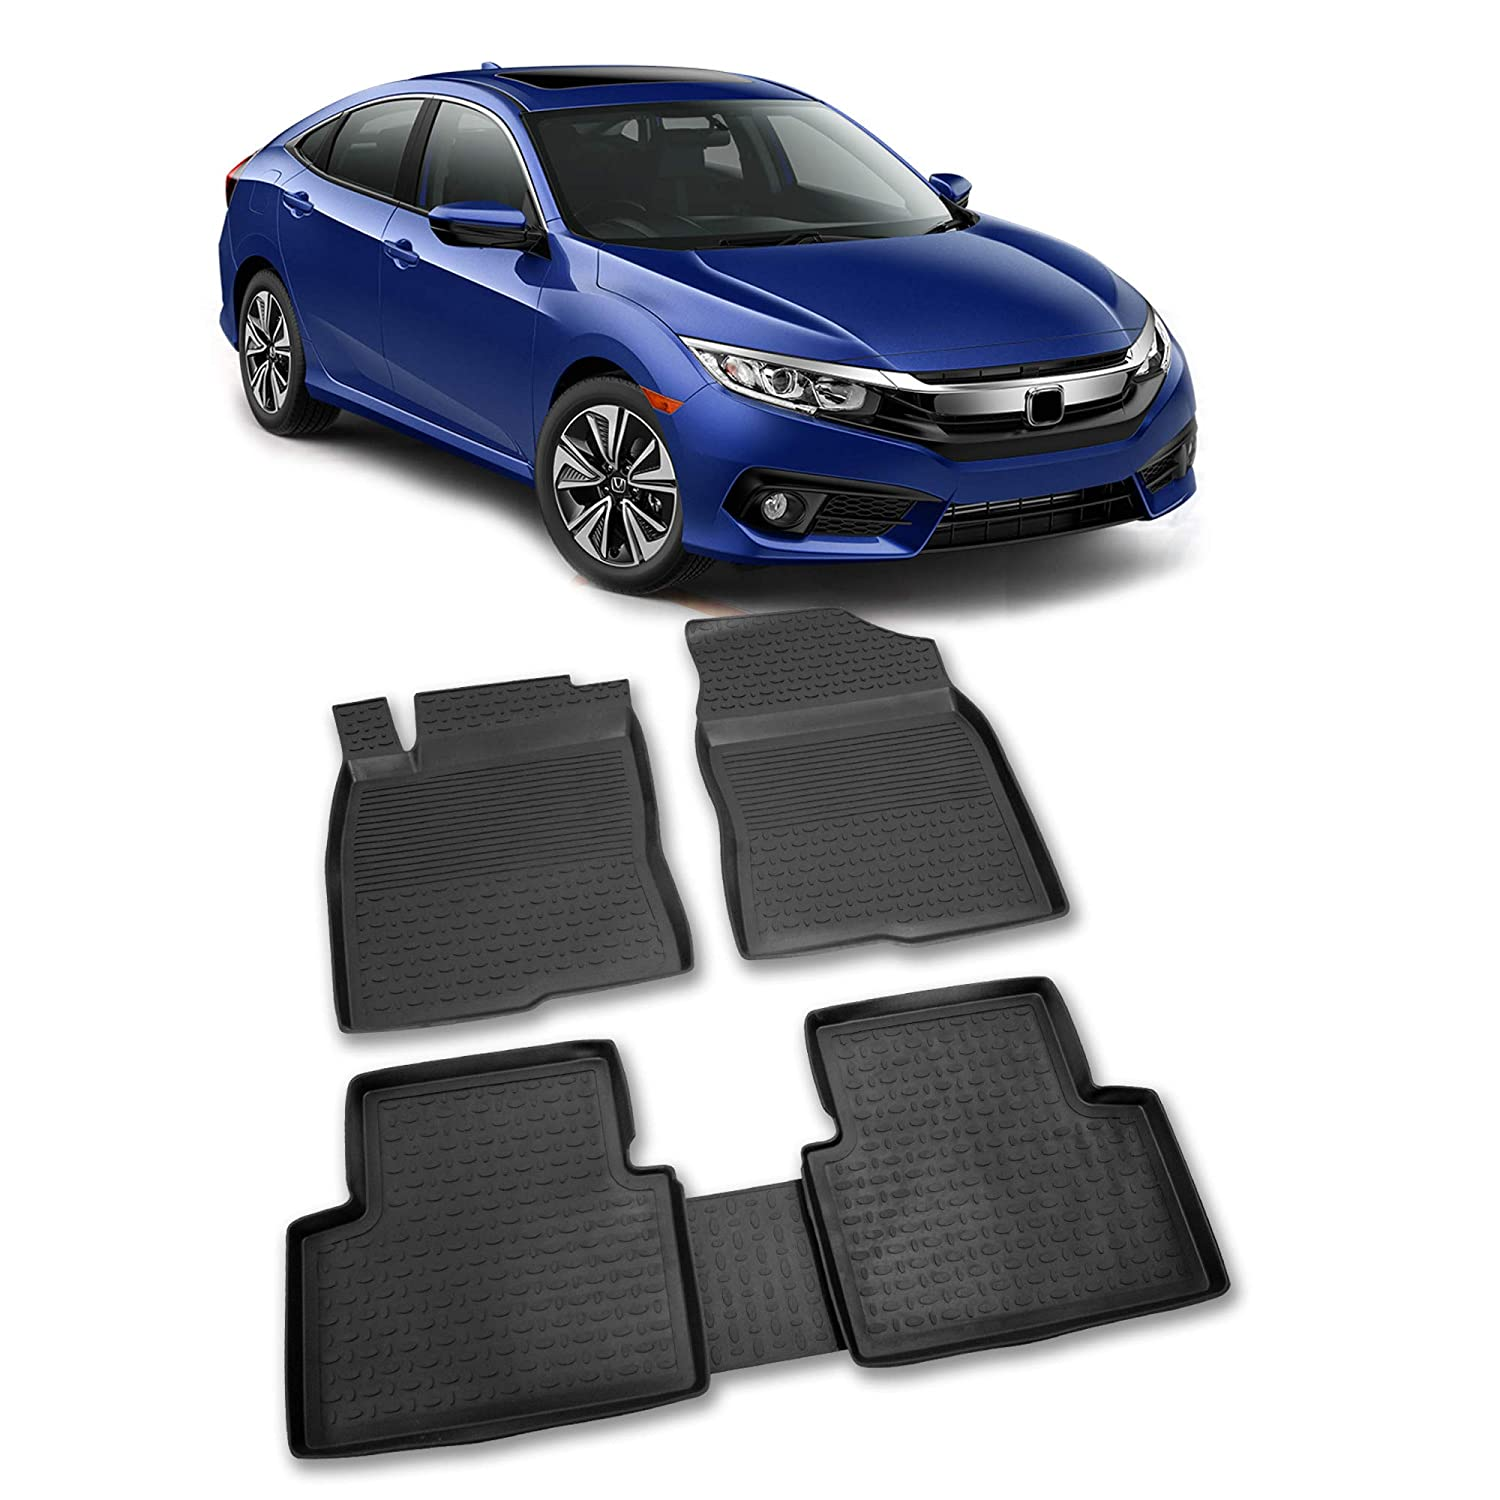 RefRef Custom All Weather 4D Car Mat for 2016-2019 Honda Civic Waterproof /& Dirt Proof Black Anti-Slip Auto Flooring Eco-Friendly /& Easy to Clean